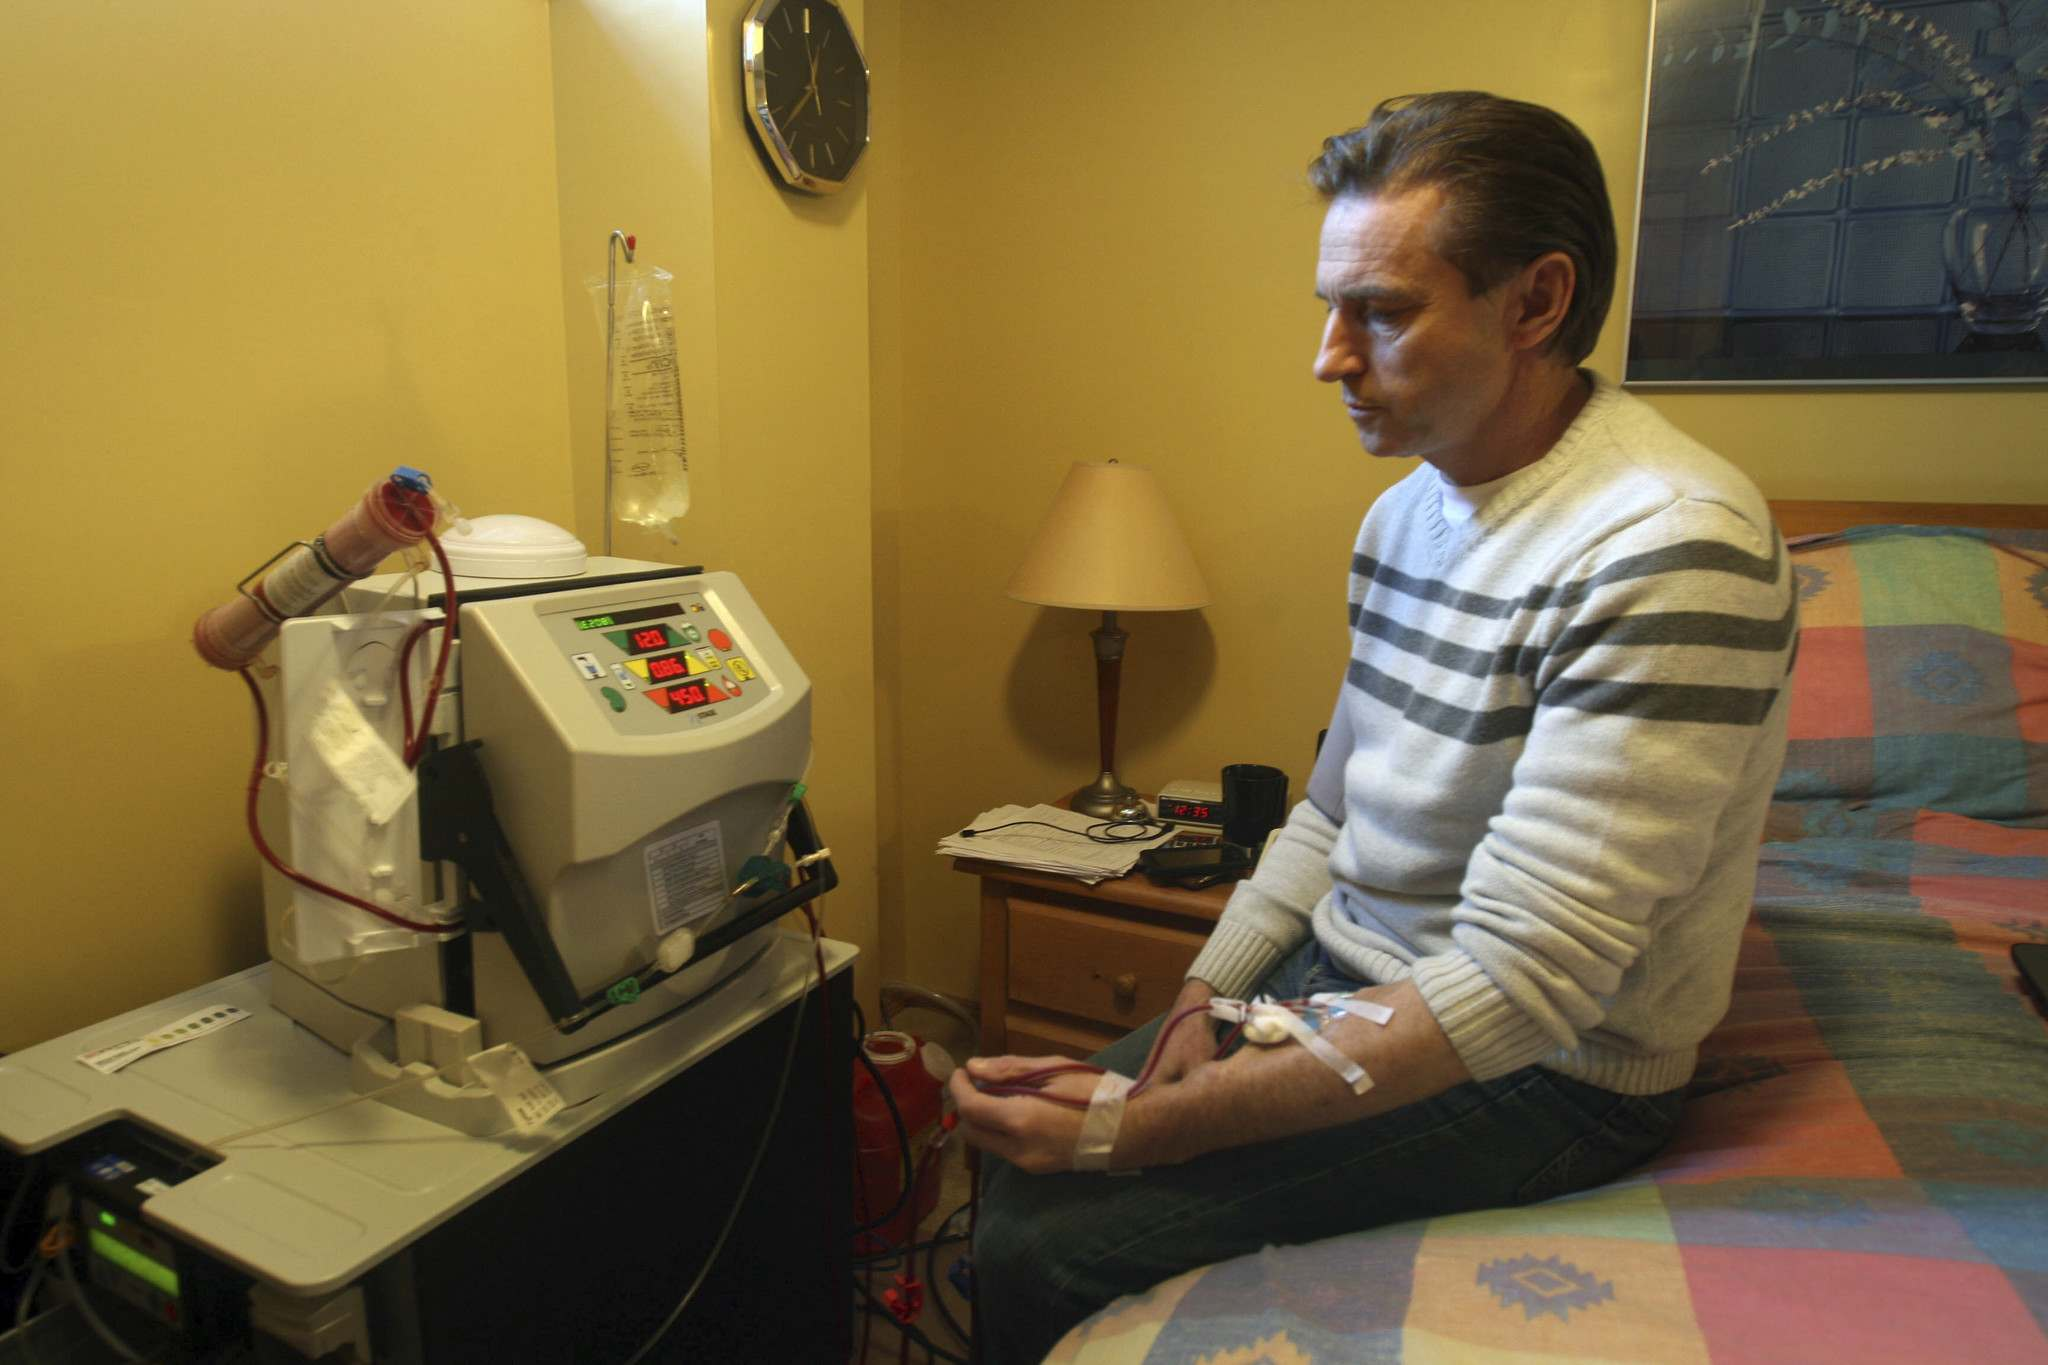 Photos by JOE BRYKSA / WINNIPEG FREE PRESS</p><p>Winnipegger Blair Waldvogel, 50, suffers from kidney failure and has been on home dialysis for more than five years. New technology could soon offer him new freedom.</p>